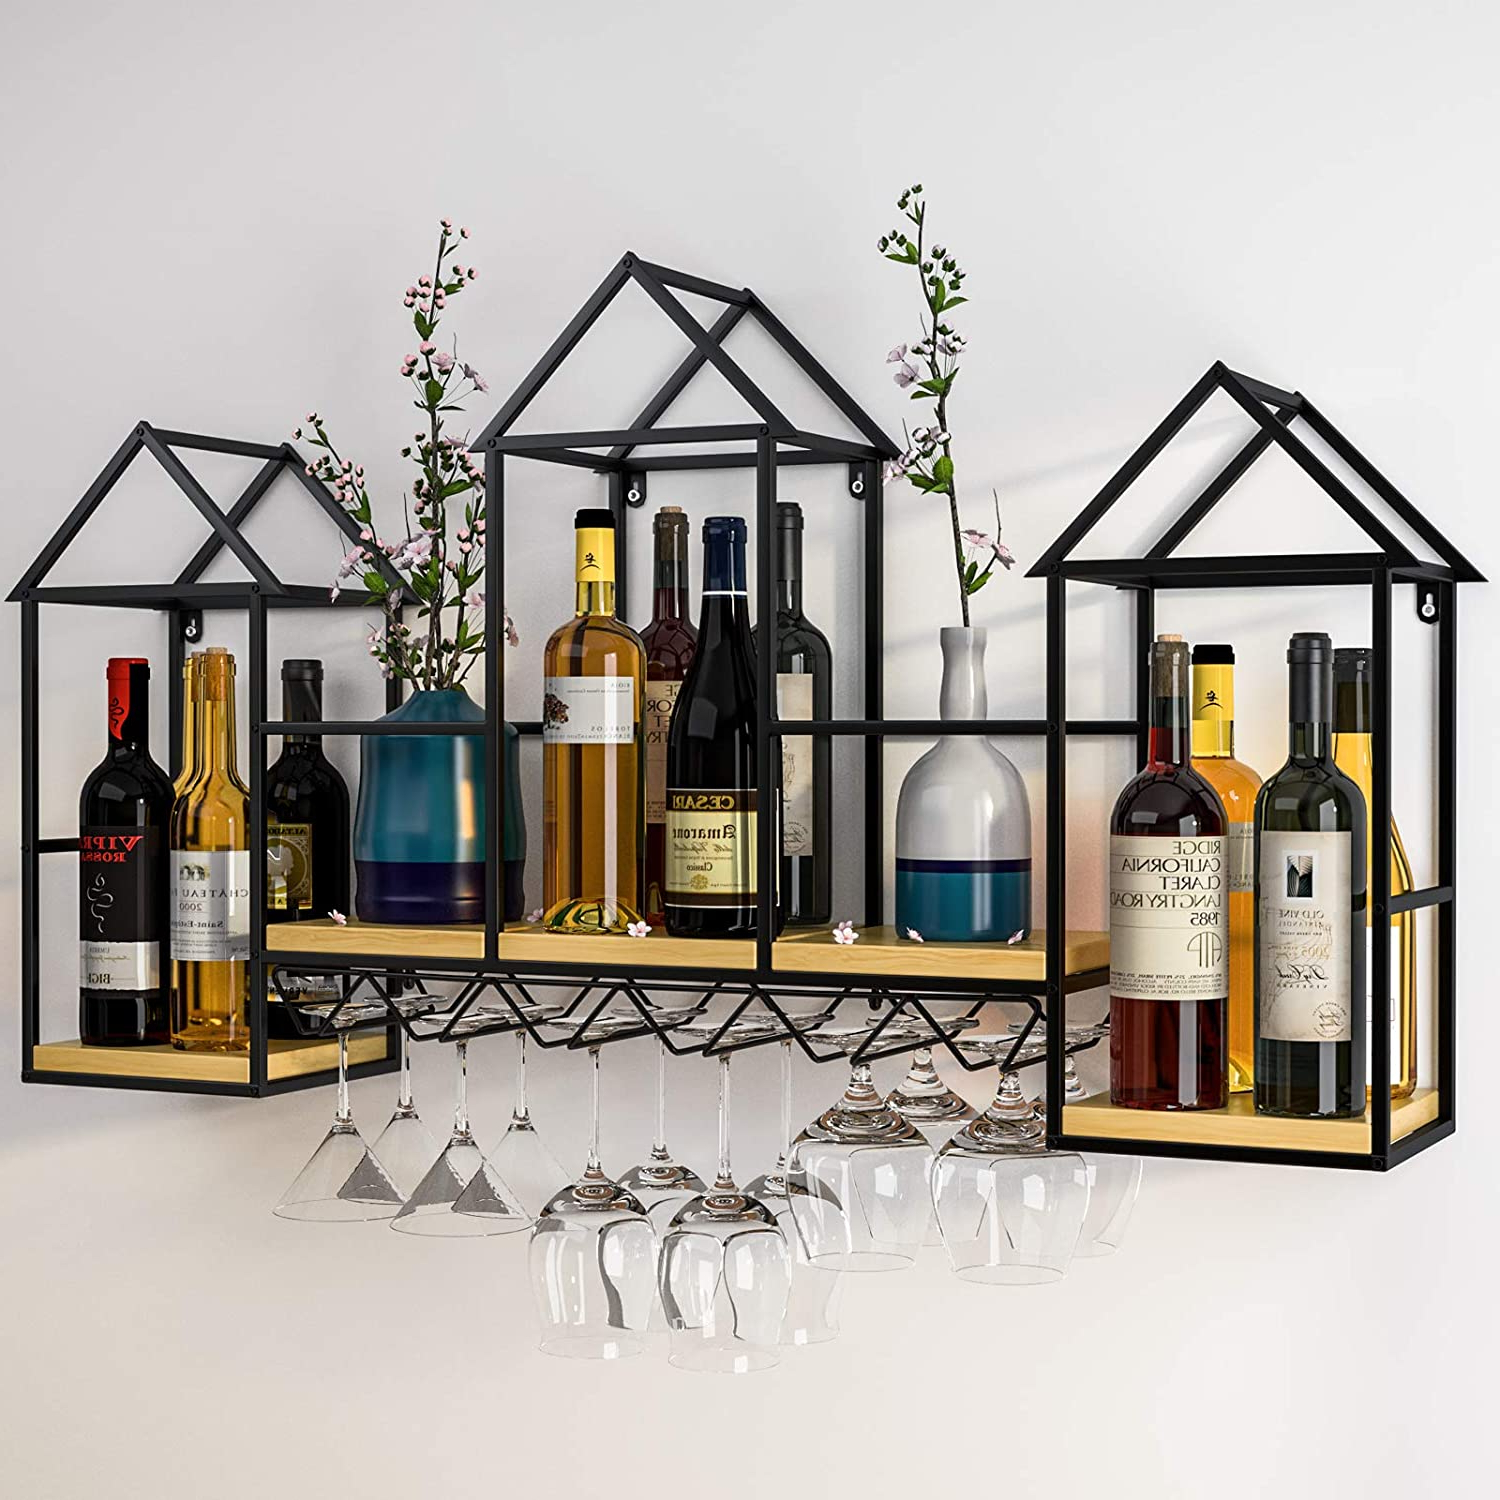 Fashionable Three Glass Holder Wall Décor Throughout Mecor Metal Wine Rack Wall Mounted With 6 Stem Glass Holder And 3 Shelves, (View 13 of 20)